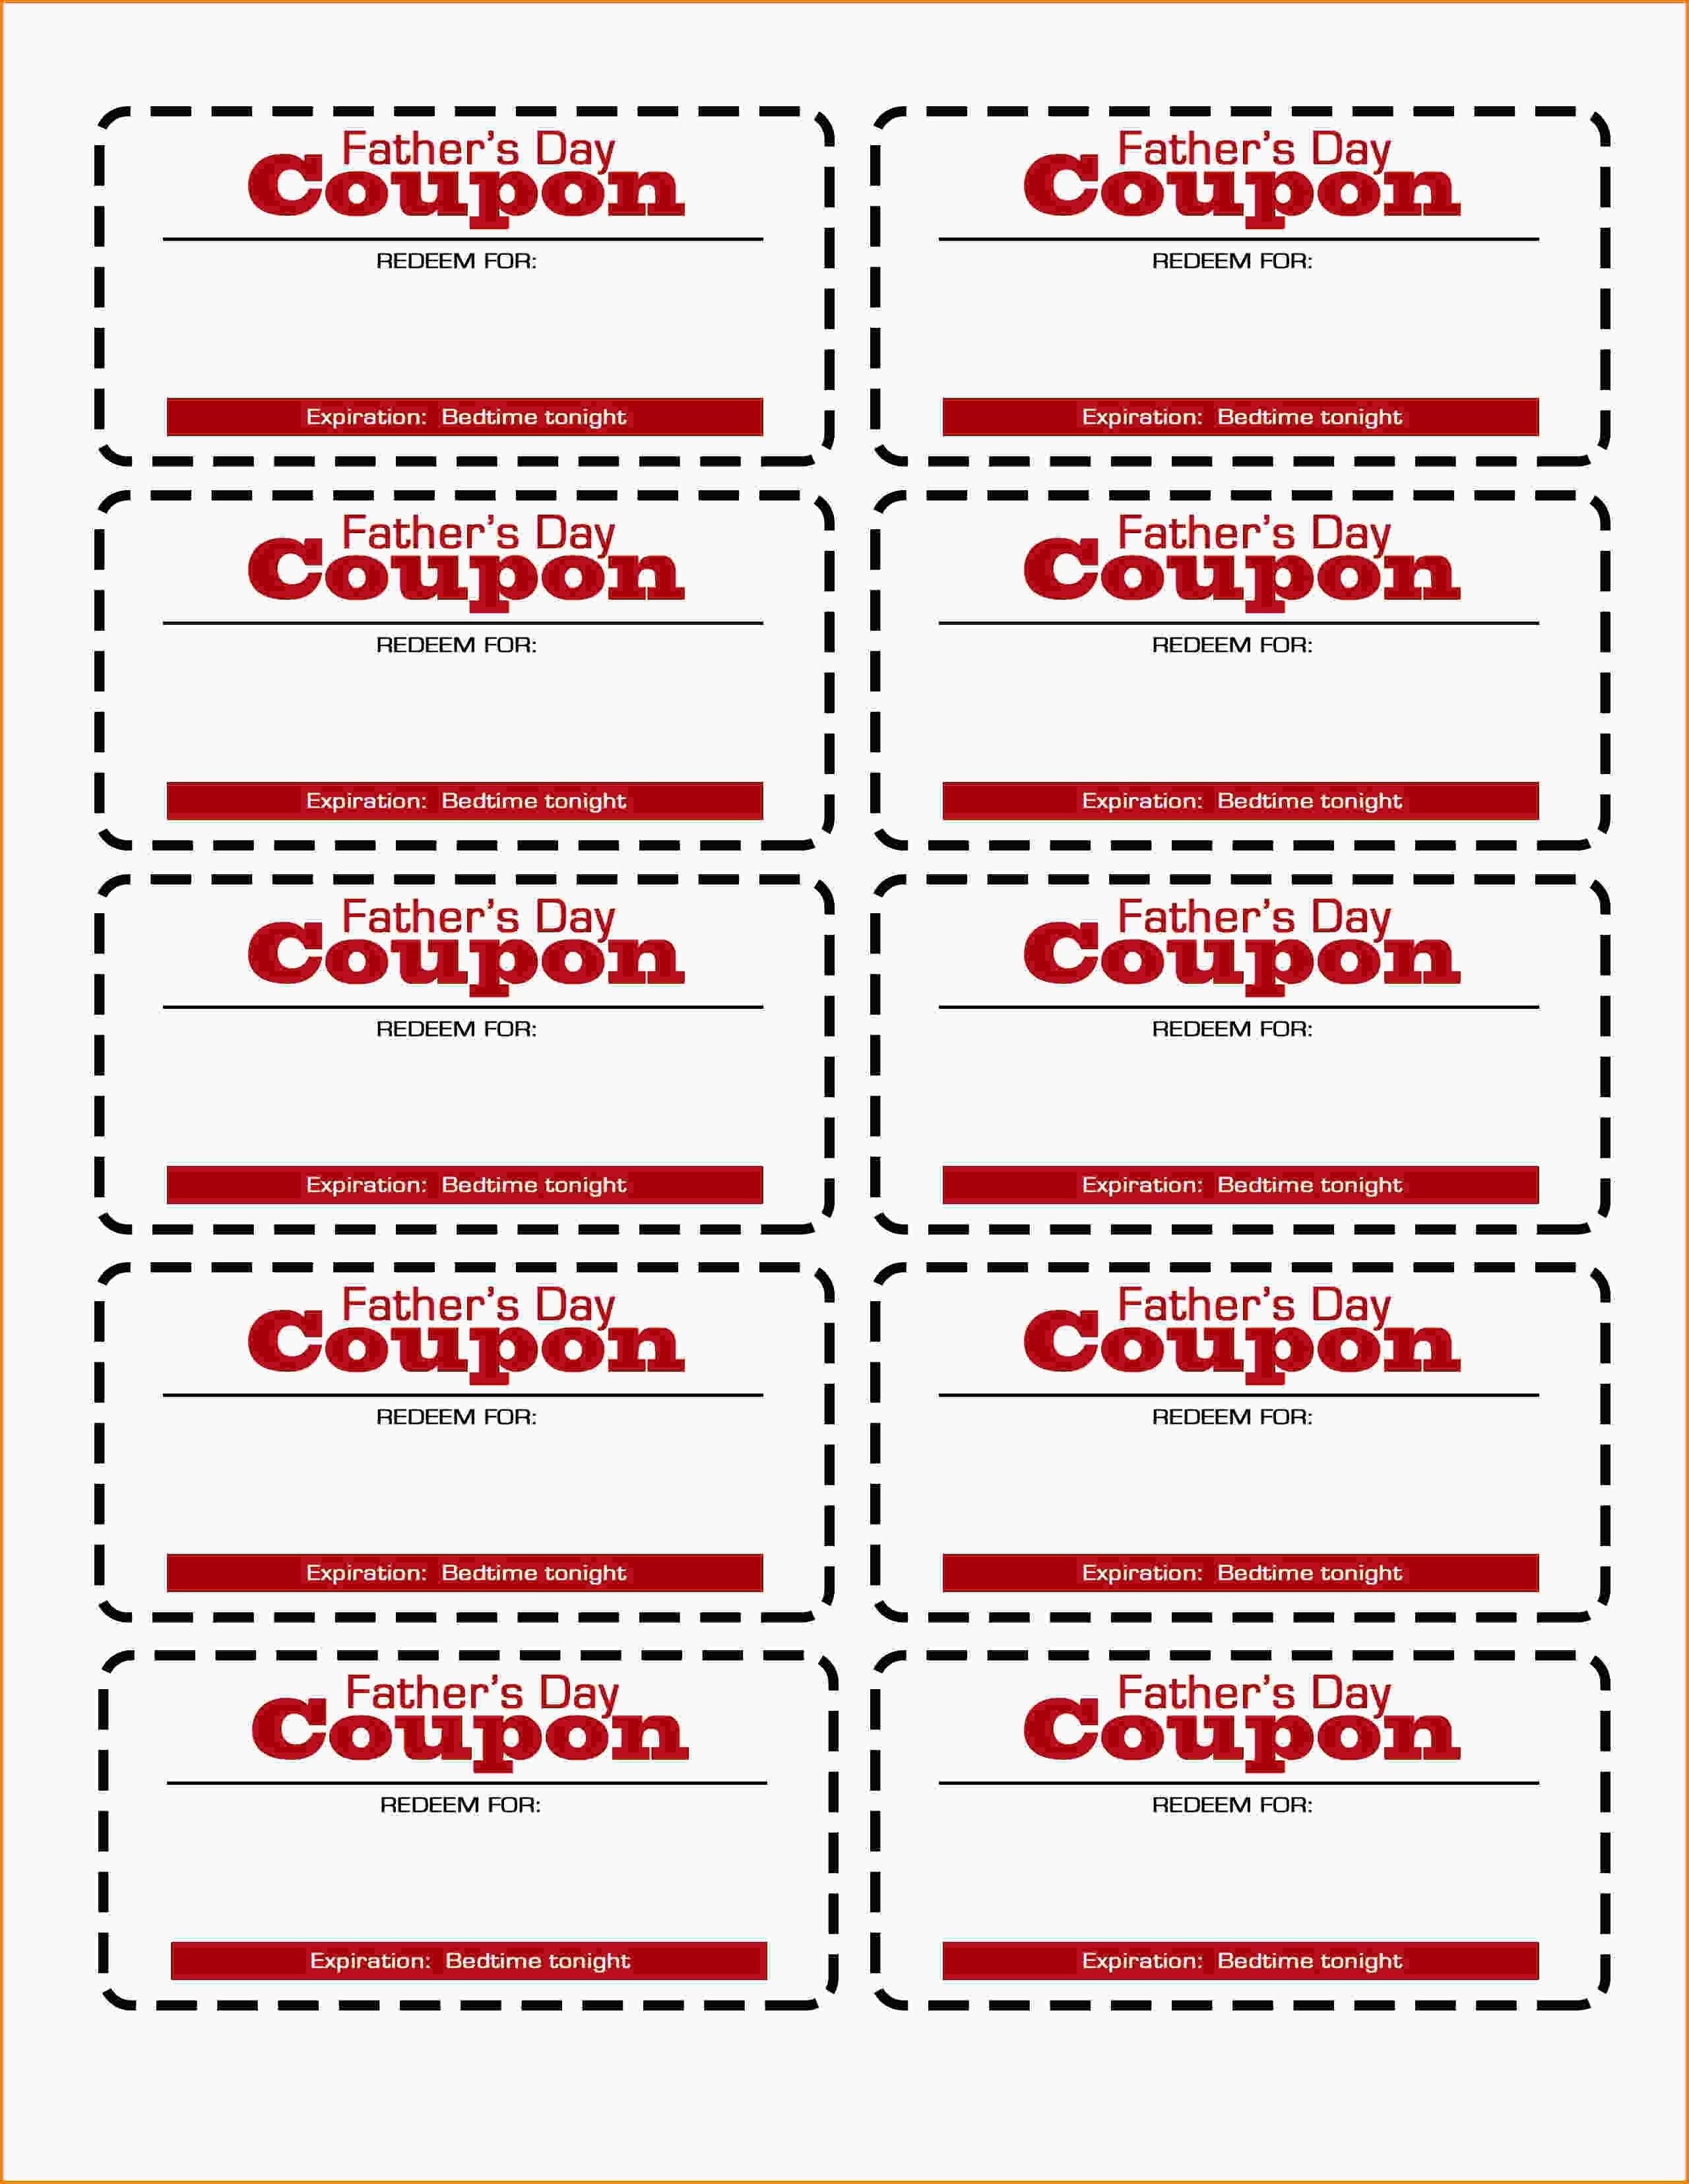 Free Printable Coupon Templates Template Ideas Surprising Intended For Blank Coupon Template Printable